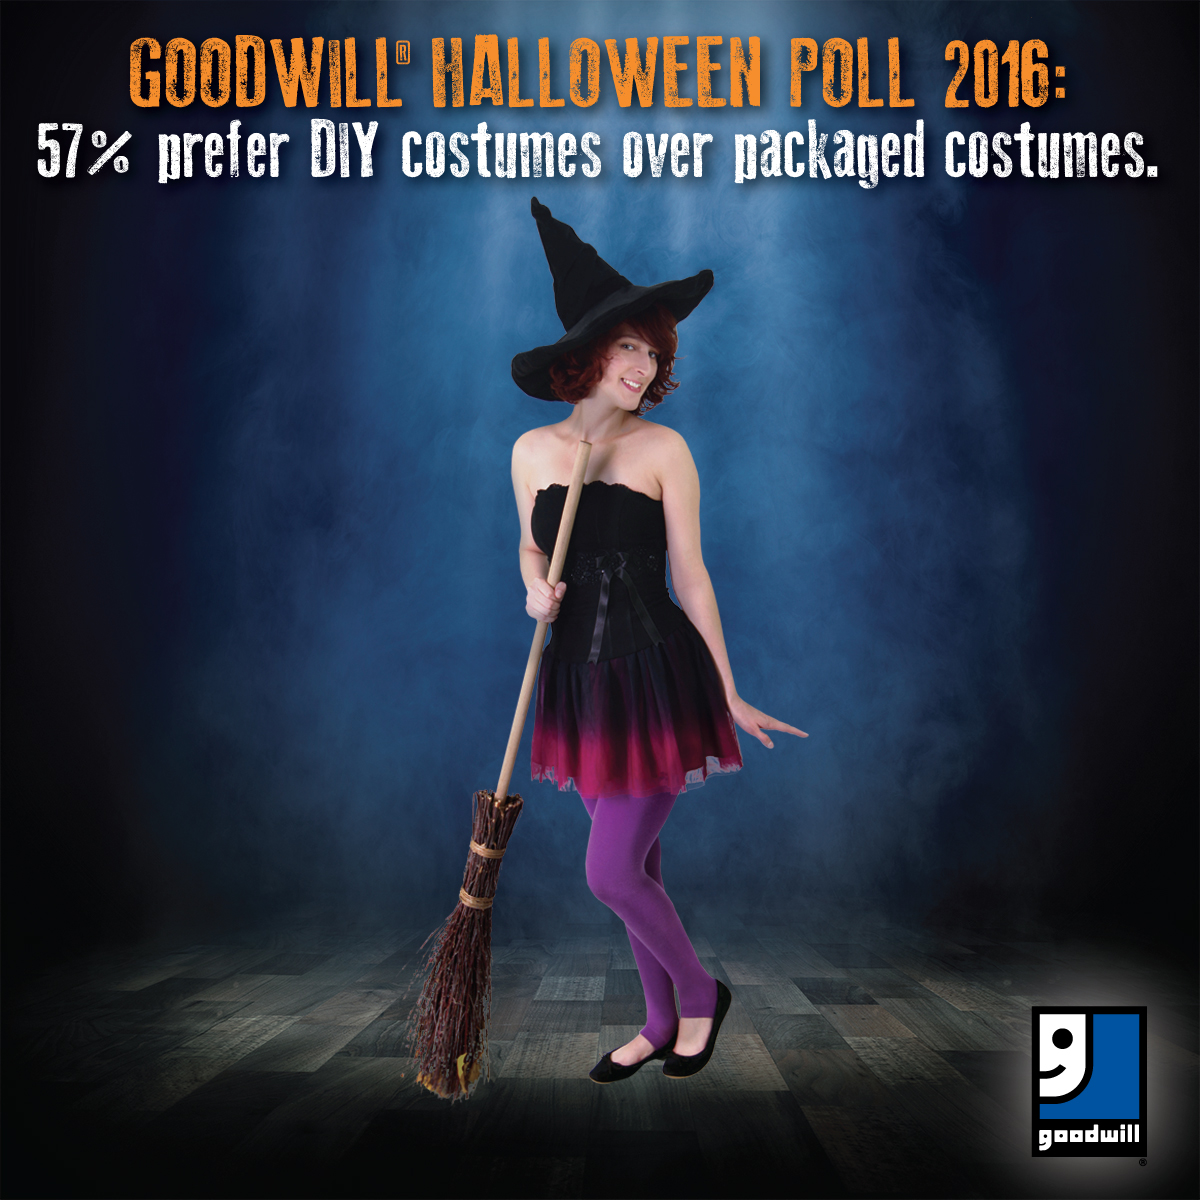 Goodwill® Uncovers Halloween Trends to Help People Celebrate a Frighteningly Fabulous Holiday